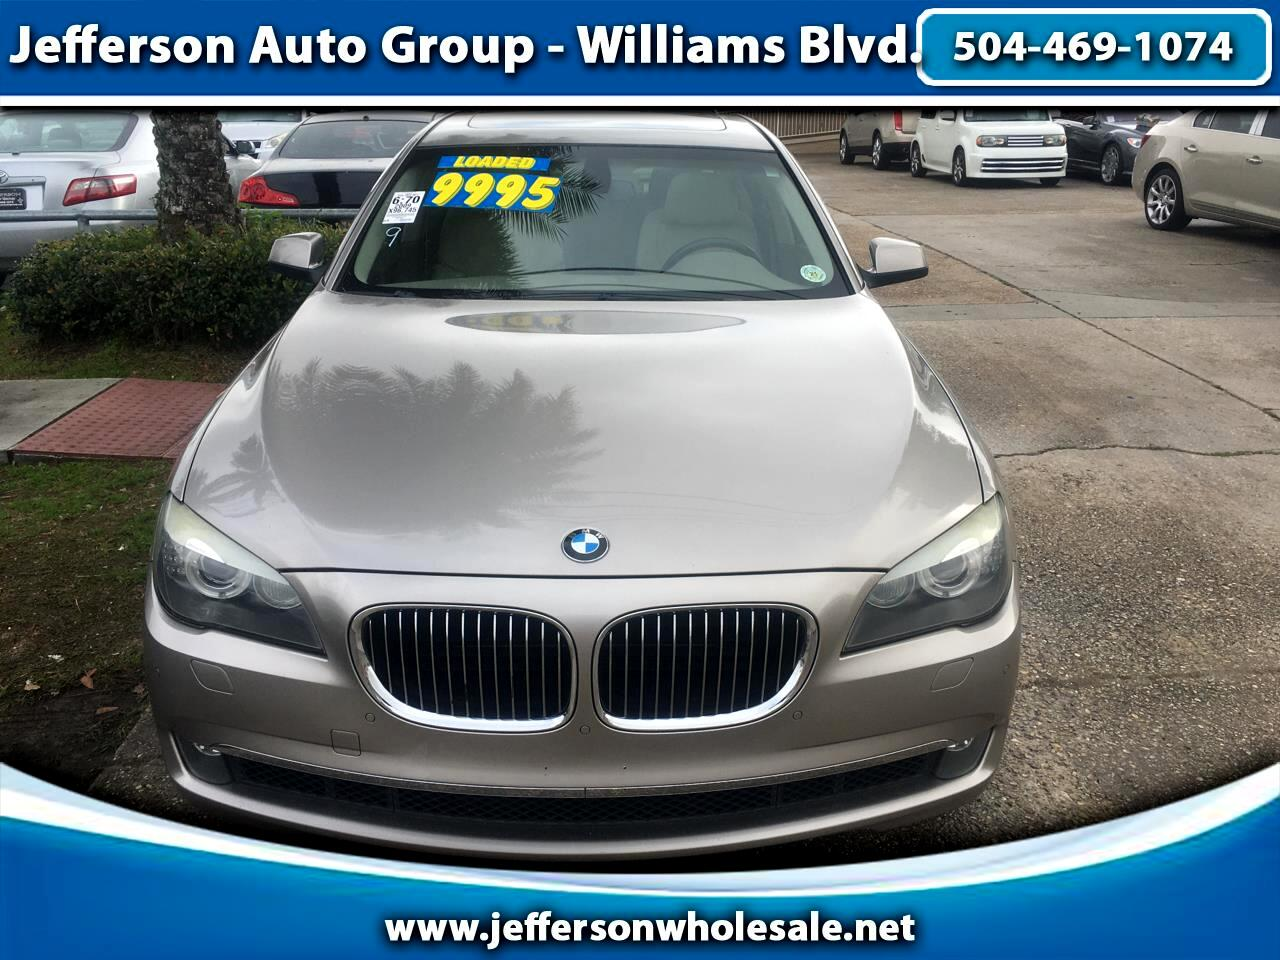 BMW 7 Series 4dr Sdn 750i 2009